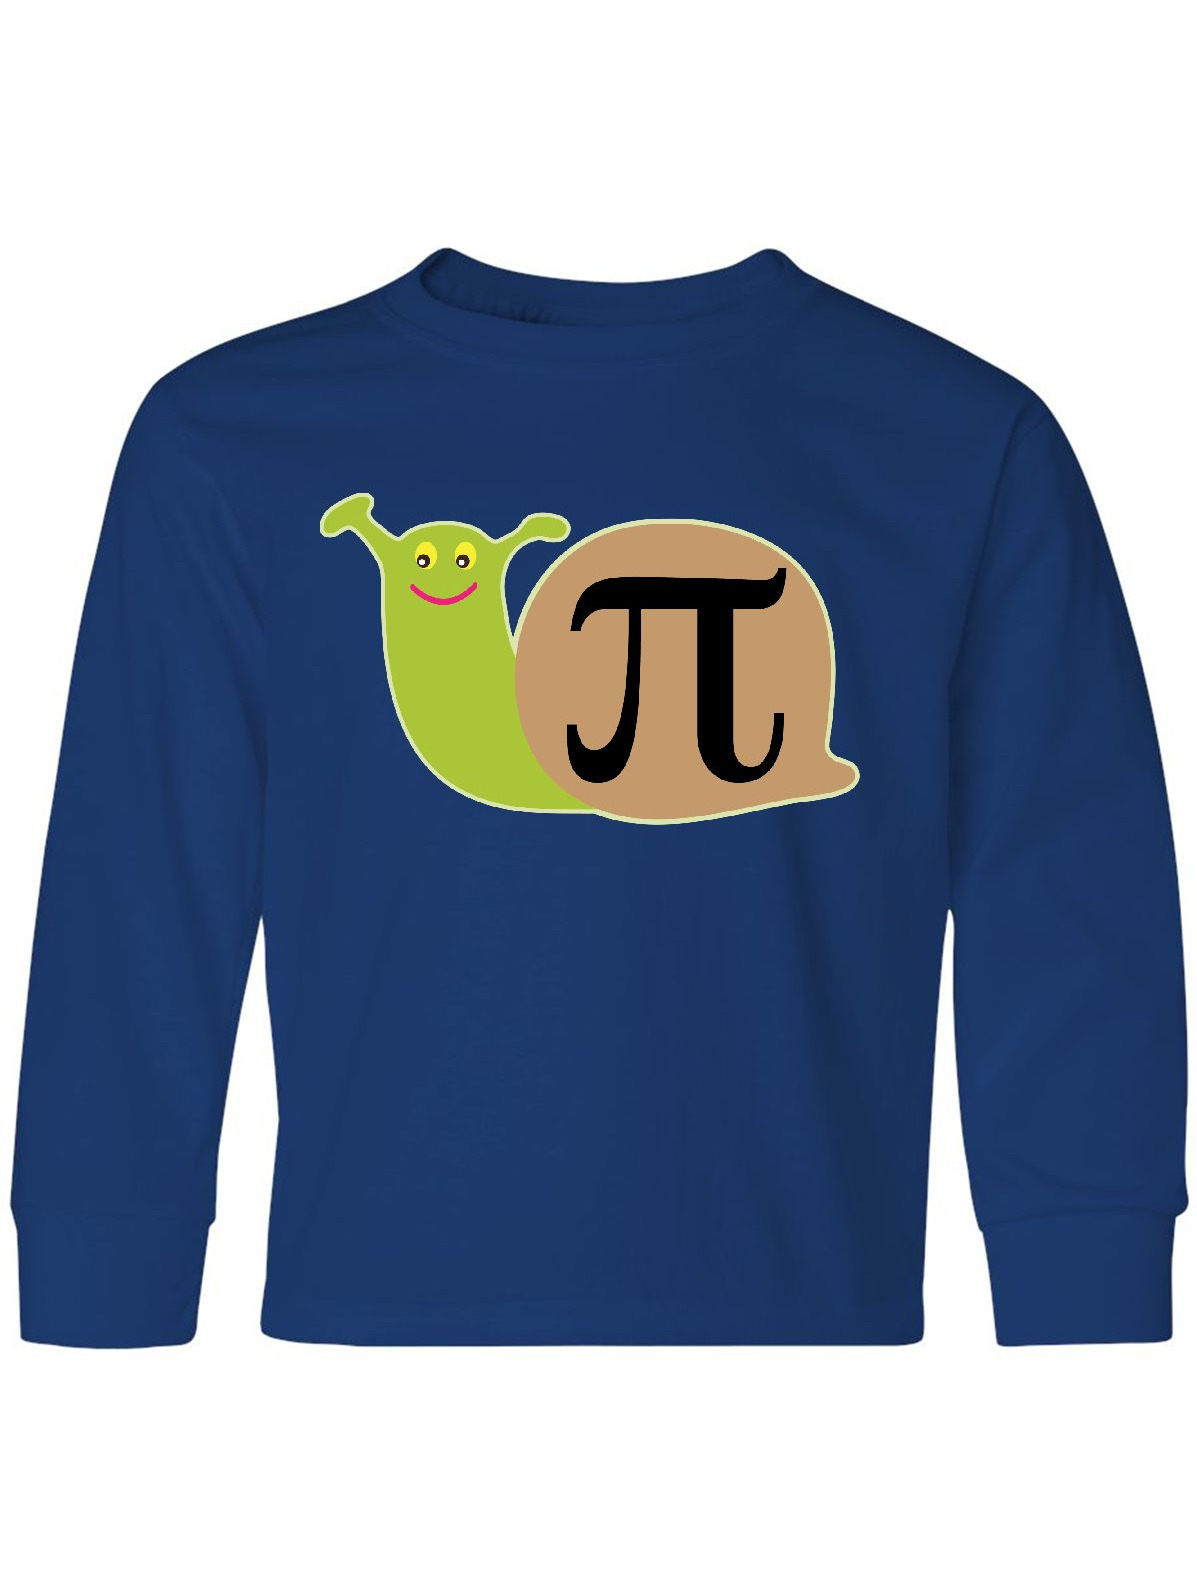 89eb8355d Inktastic - Pi Day Boys Math Youth Long Sleeve T-Shirt - Walmart.com